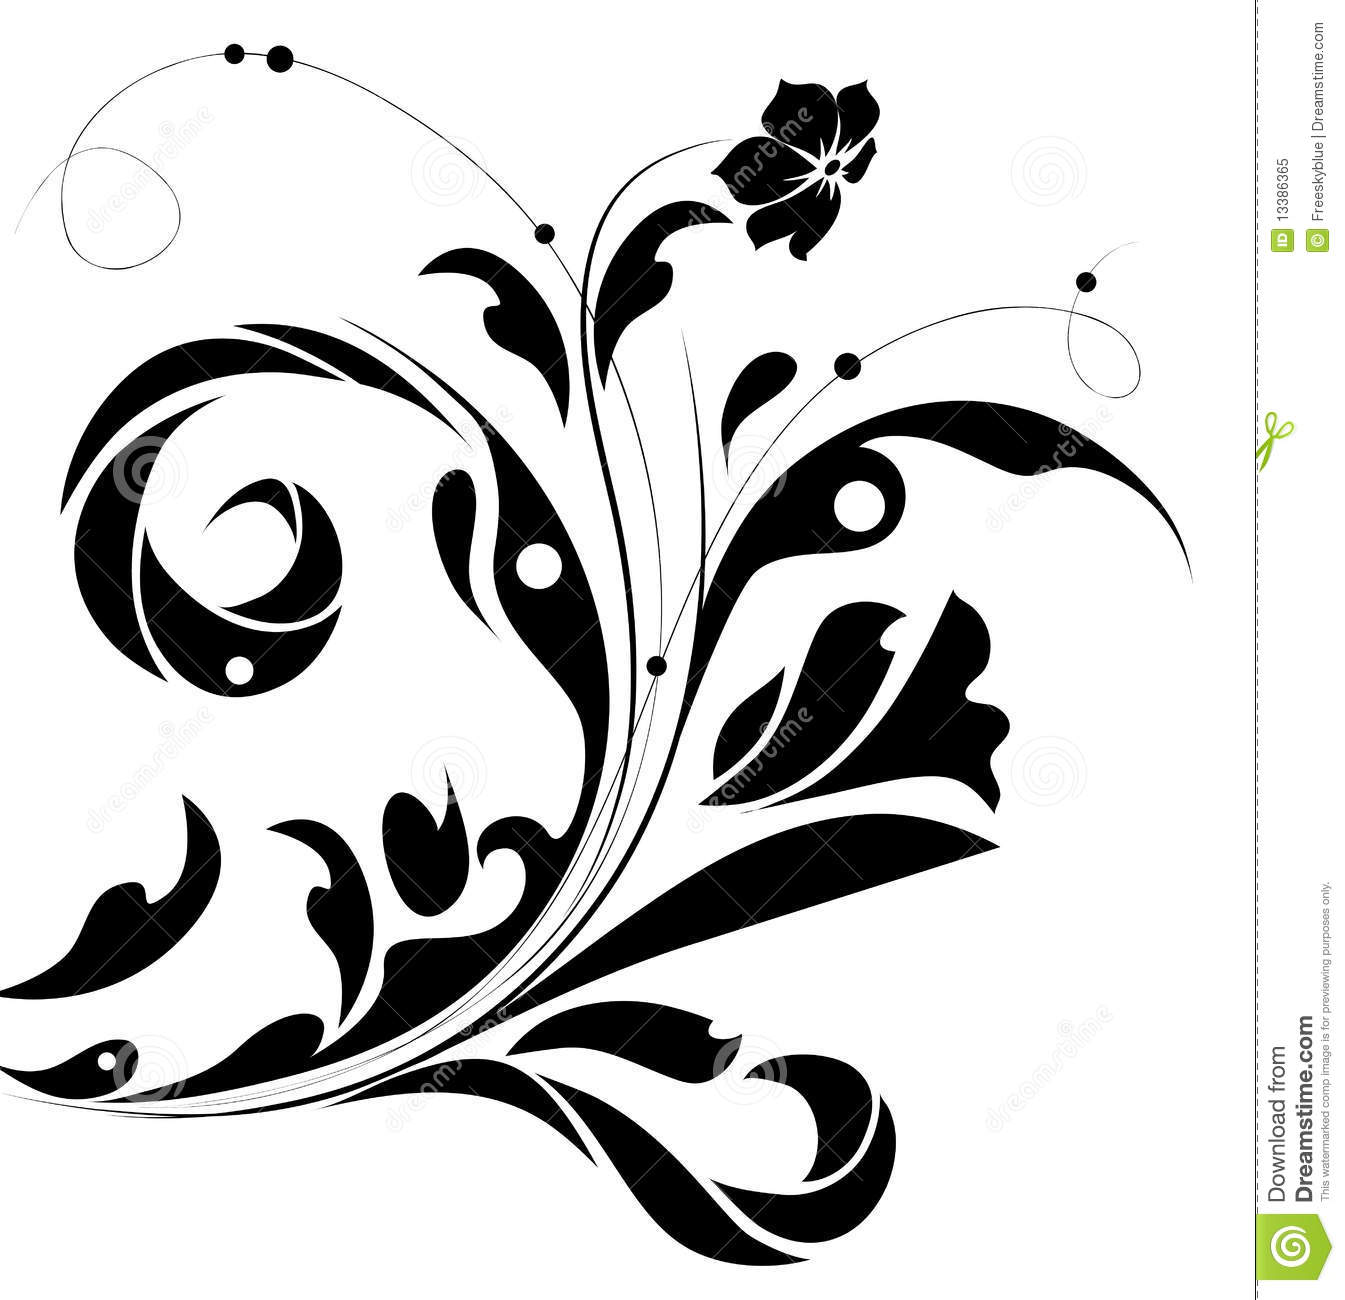 Black Flower Pattern Stock Images: Black Flower Pattern Silhouette Stock Illustration